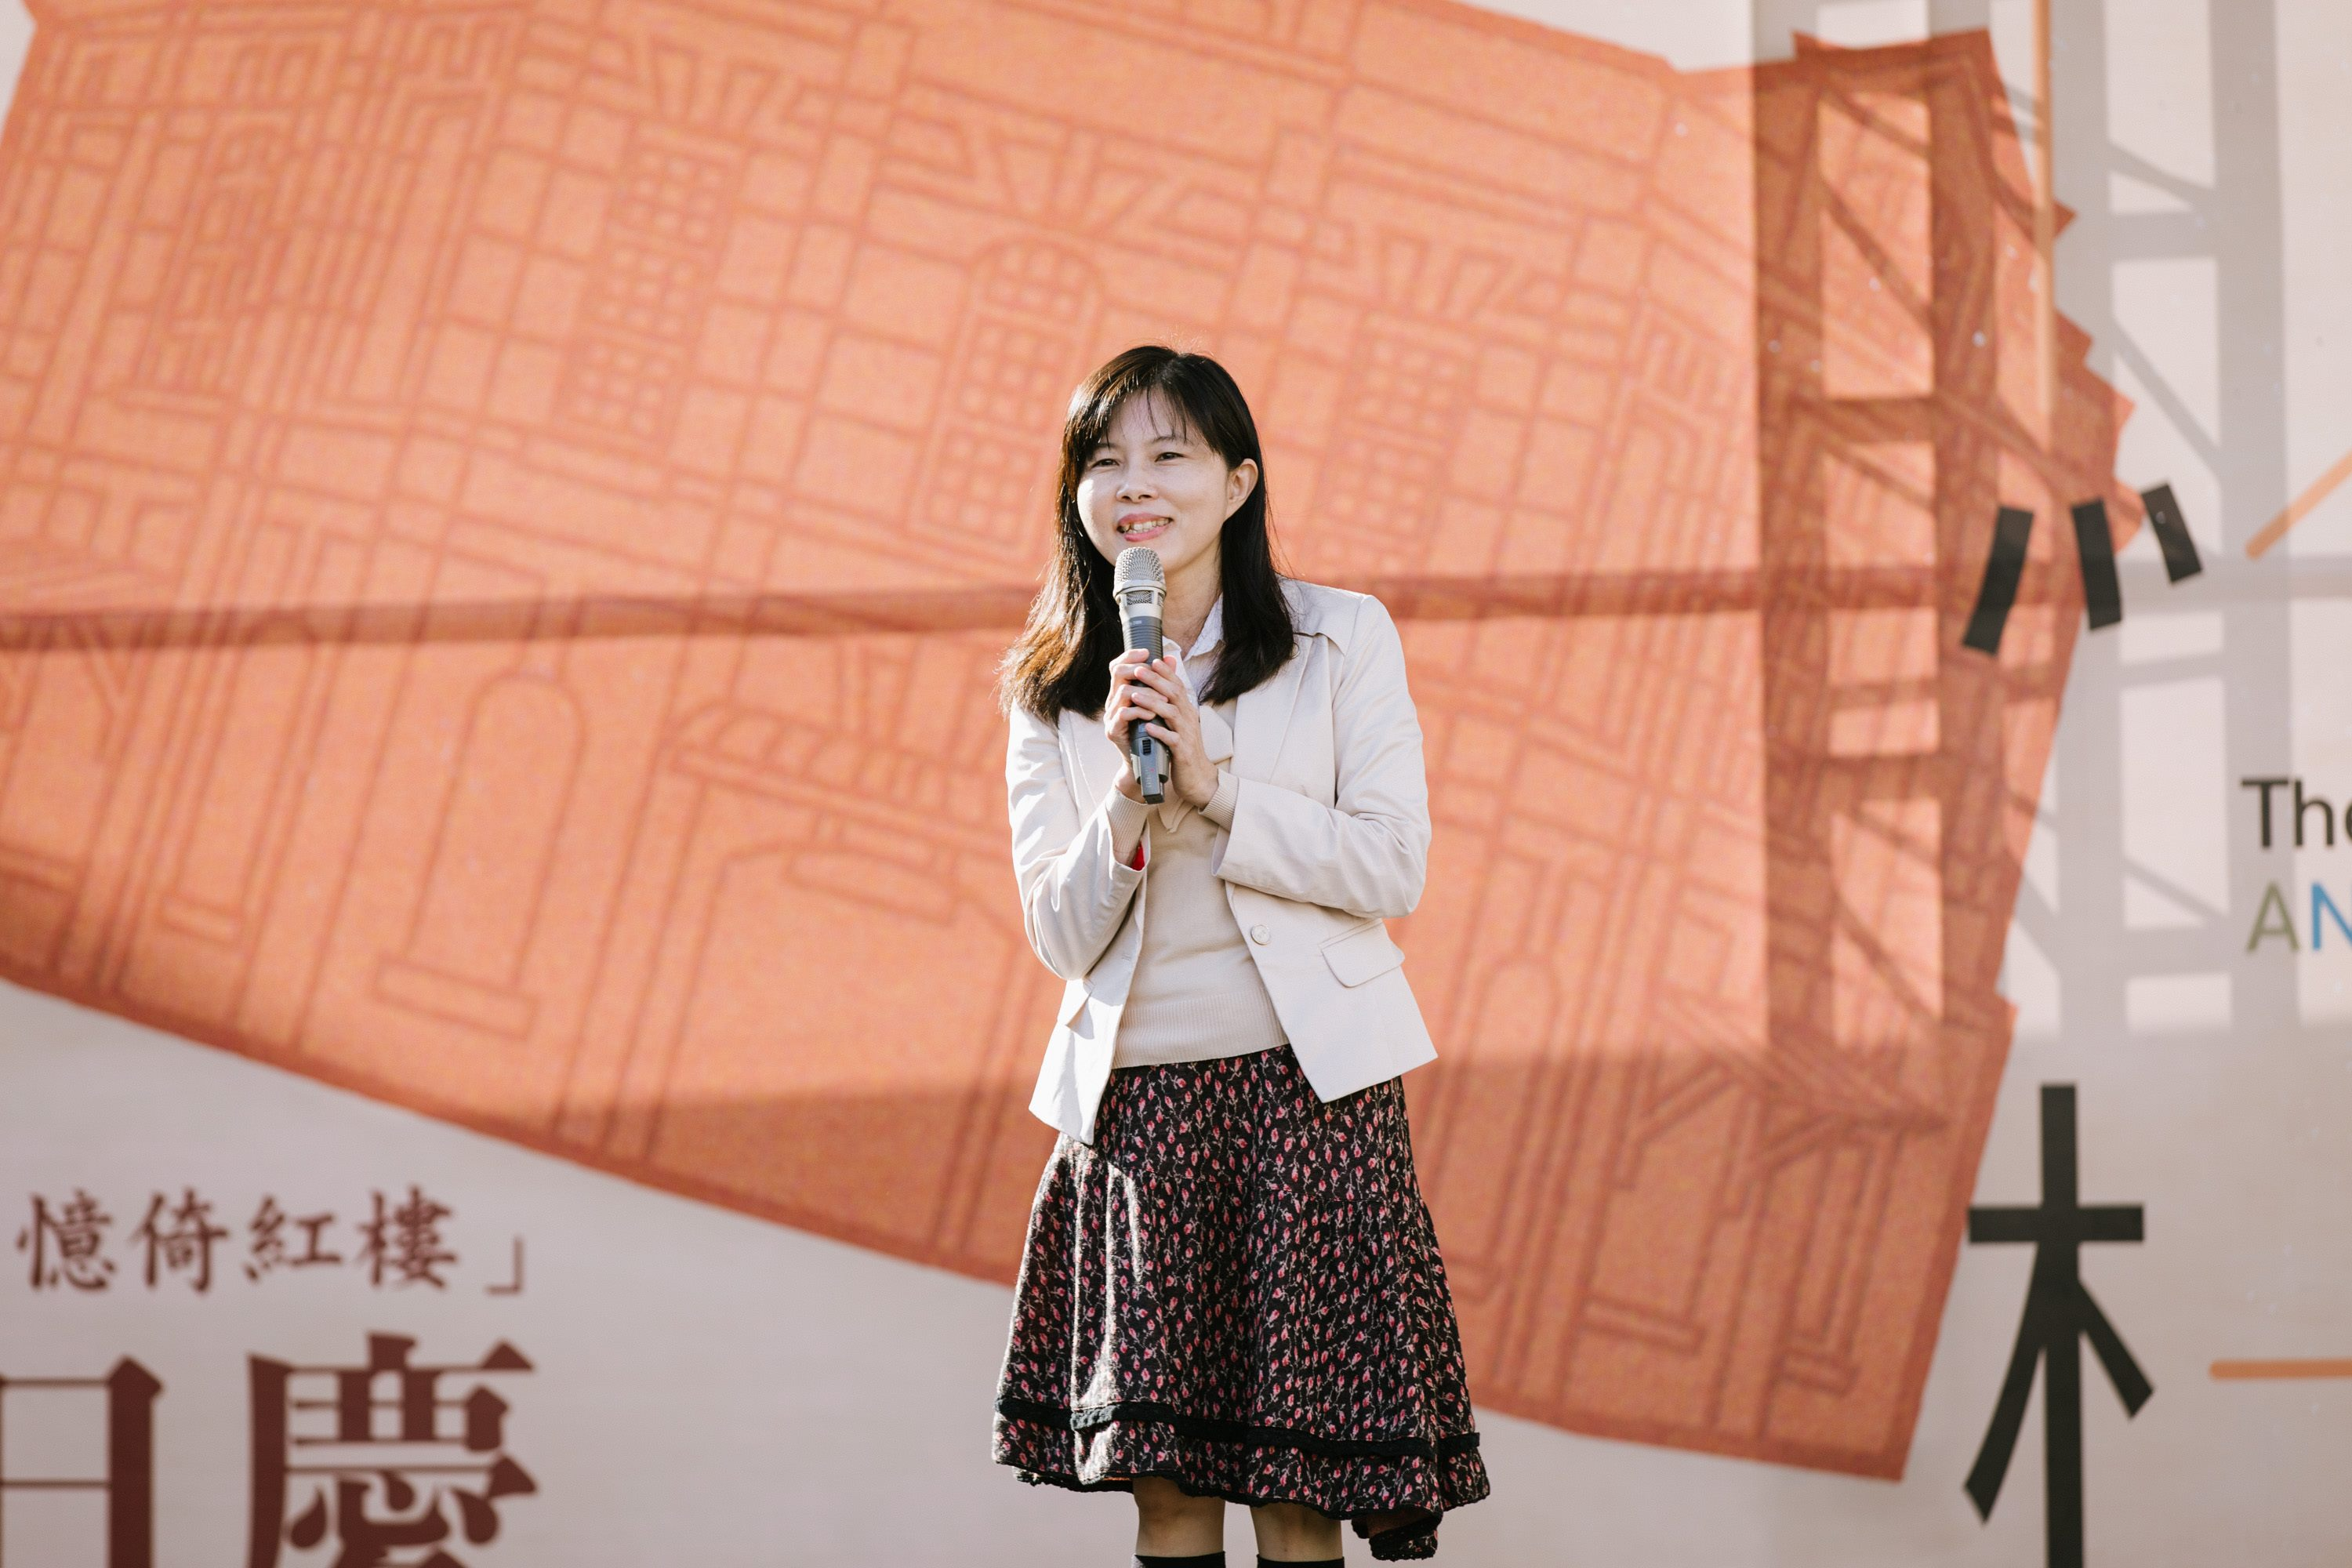 Chen Yuxin (陳譽馨), the Deputy Commissioner of the Department of Cultural Affairs welcomes everyone to the press conference.